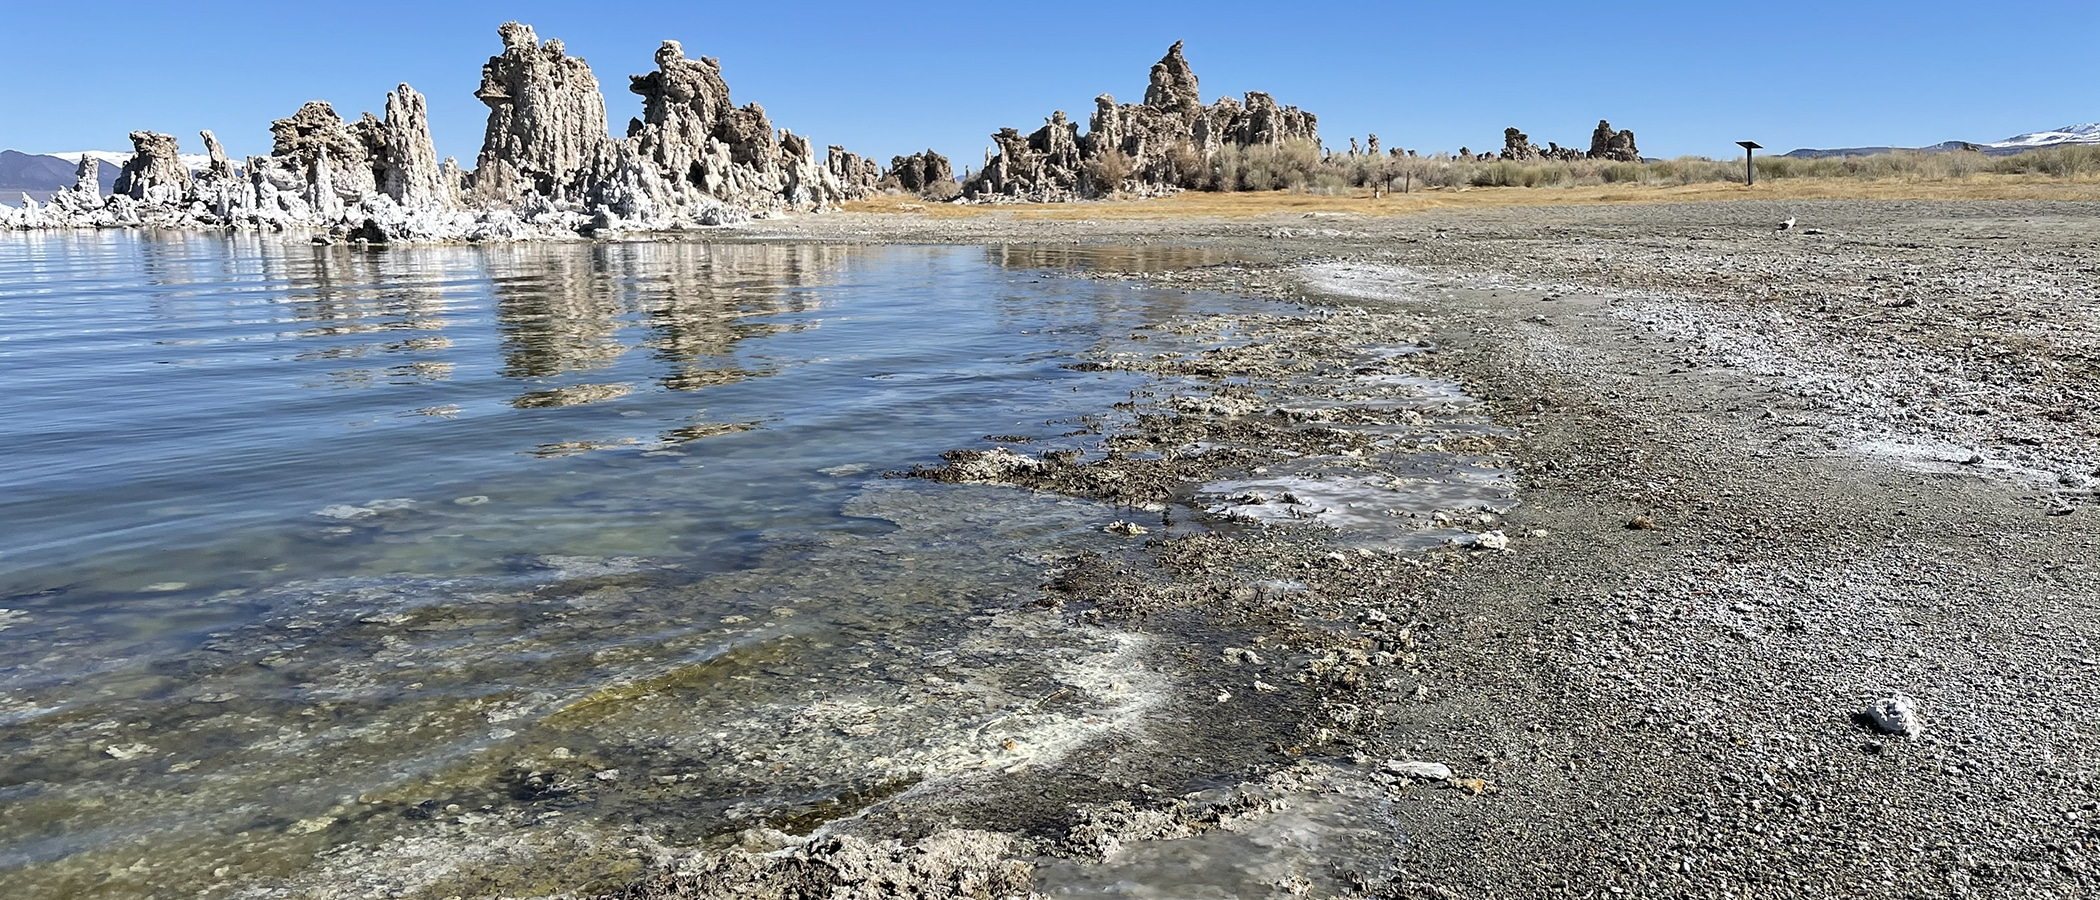 Mono Lake water reflects the blue sky, and water it frozen in bumpy puddles on top of the tufa beach. Tufa towers loom in the background.